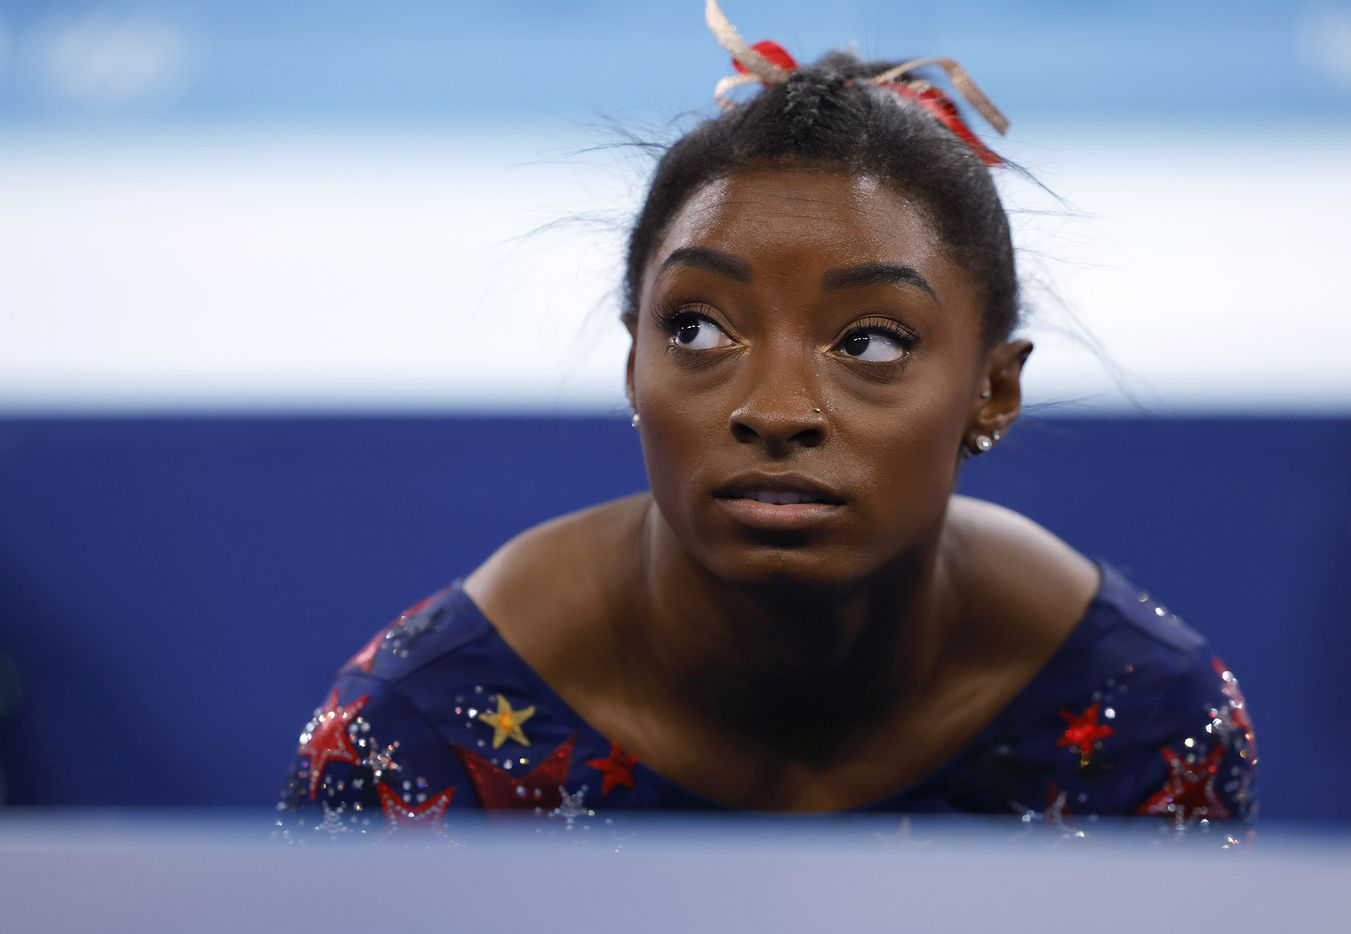 USA's Simone Biles after competing on the balance beam in a women's gymnastics event during the postponed 2020 Tokyo Olympics at Ariake Gymnastics Centre on Sunday, July 25, 2021, in Tokyo, Japan. (Vernon Bryant/The Dallas Morning News)